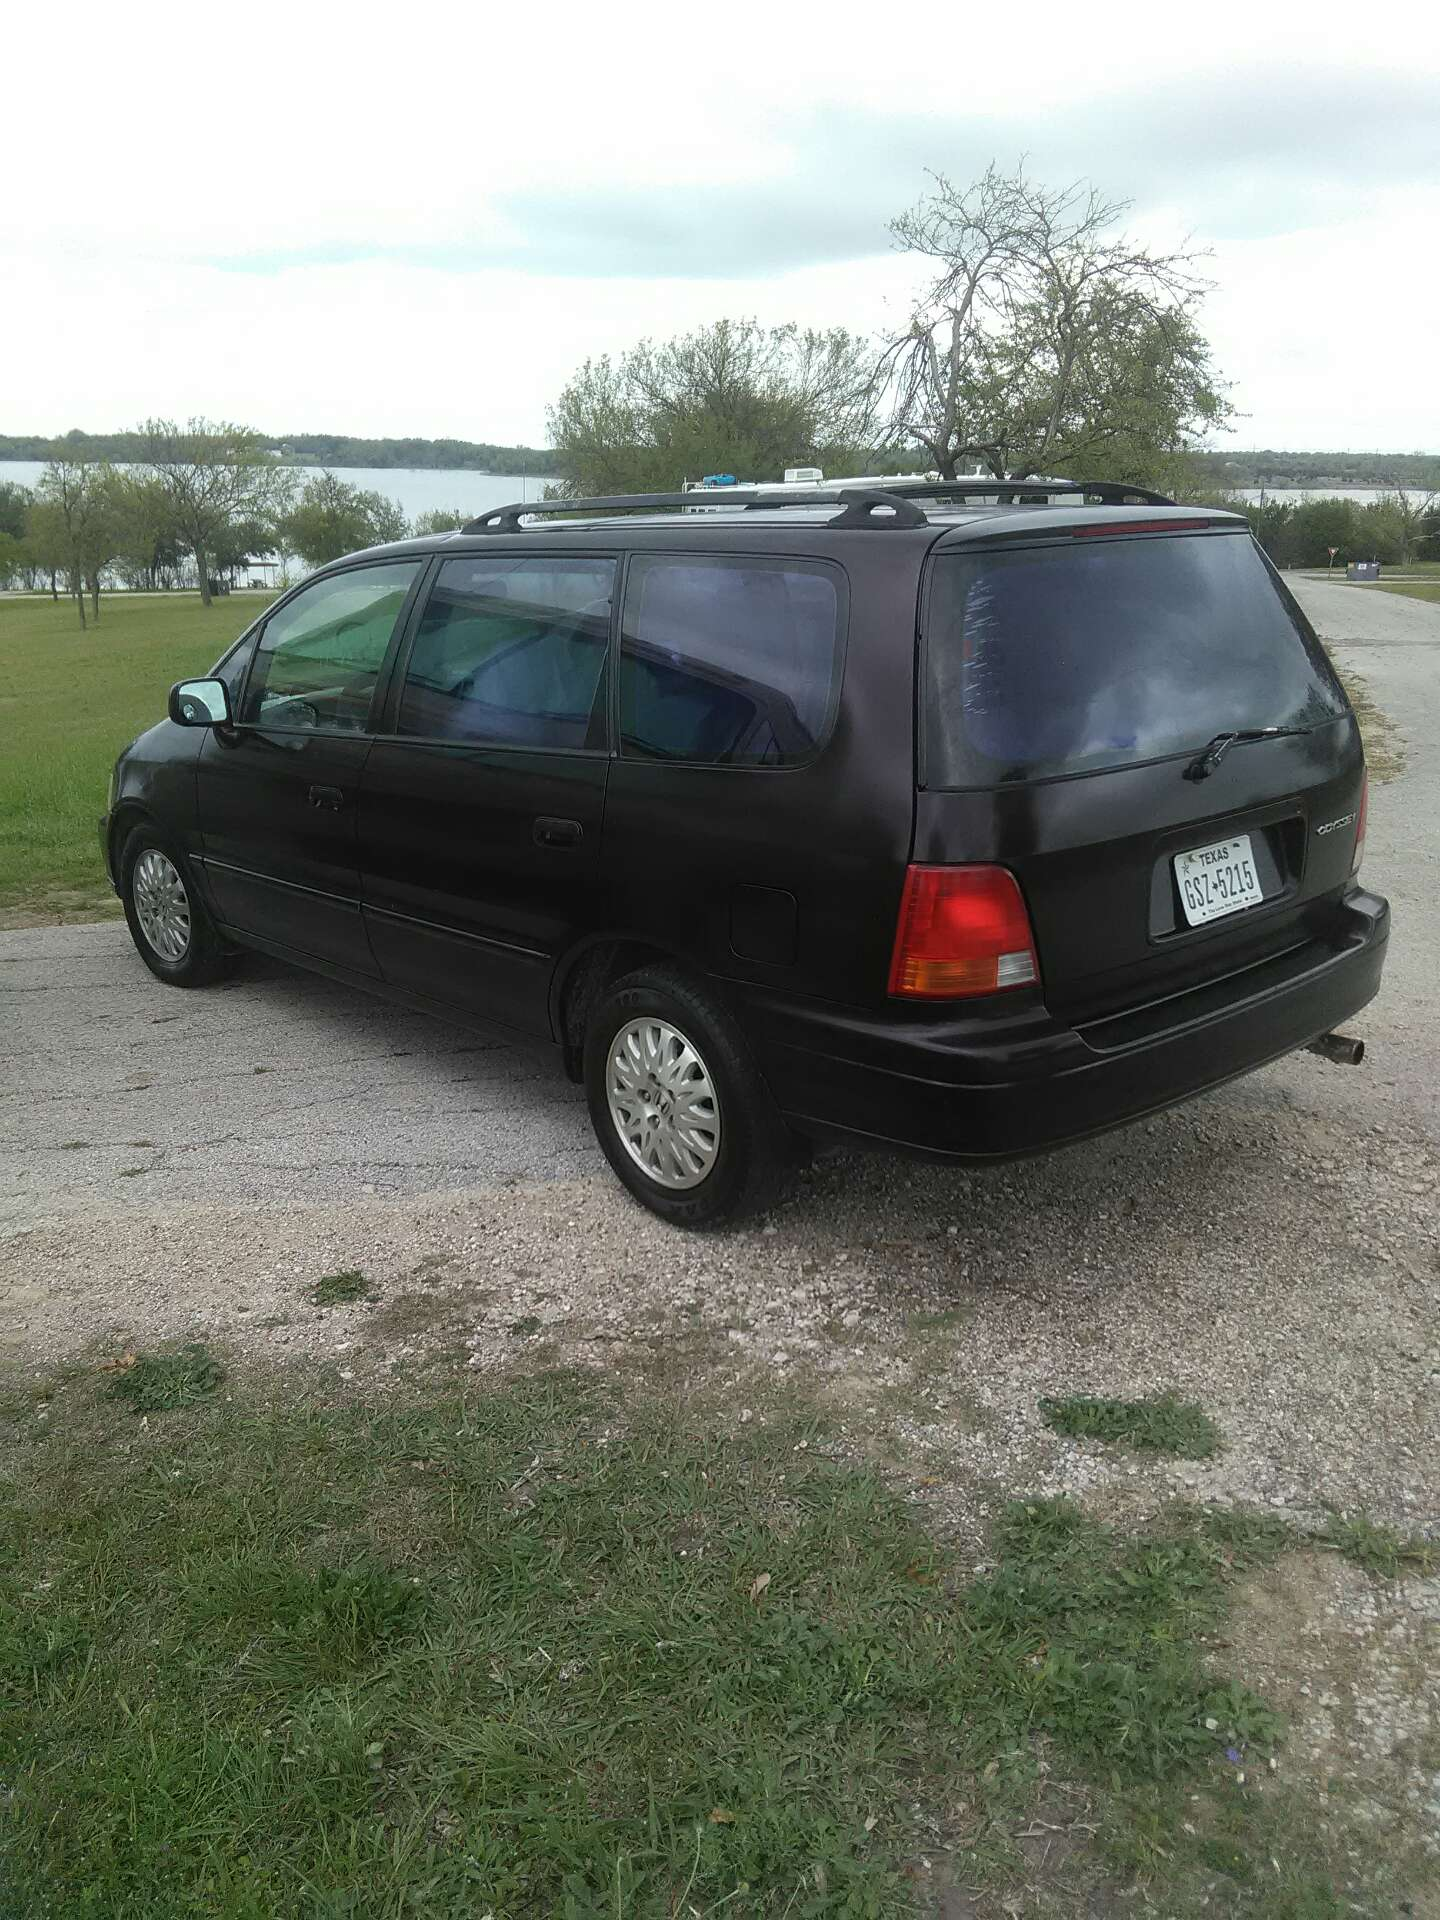 1998 honda van odyssey for sale in dallas tx 5miles buy and sell. Black Bedroom Furniture Sets. Home Design Ideas